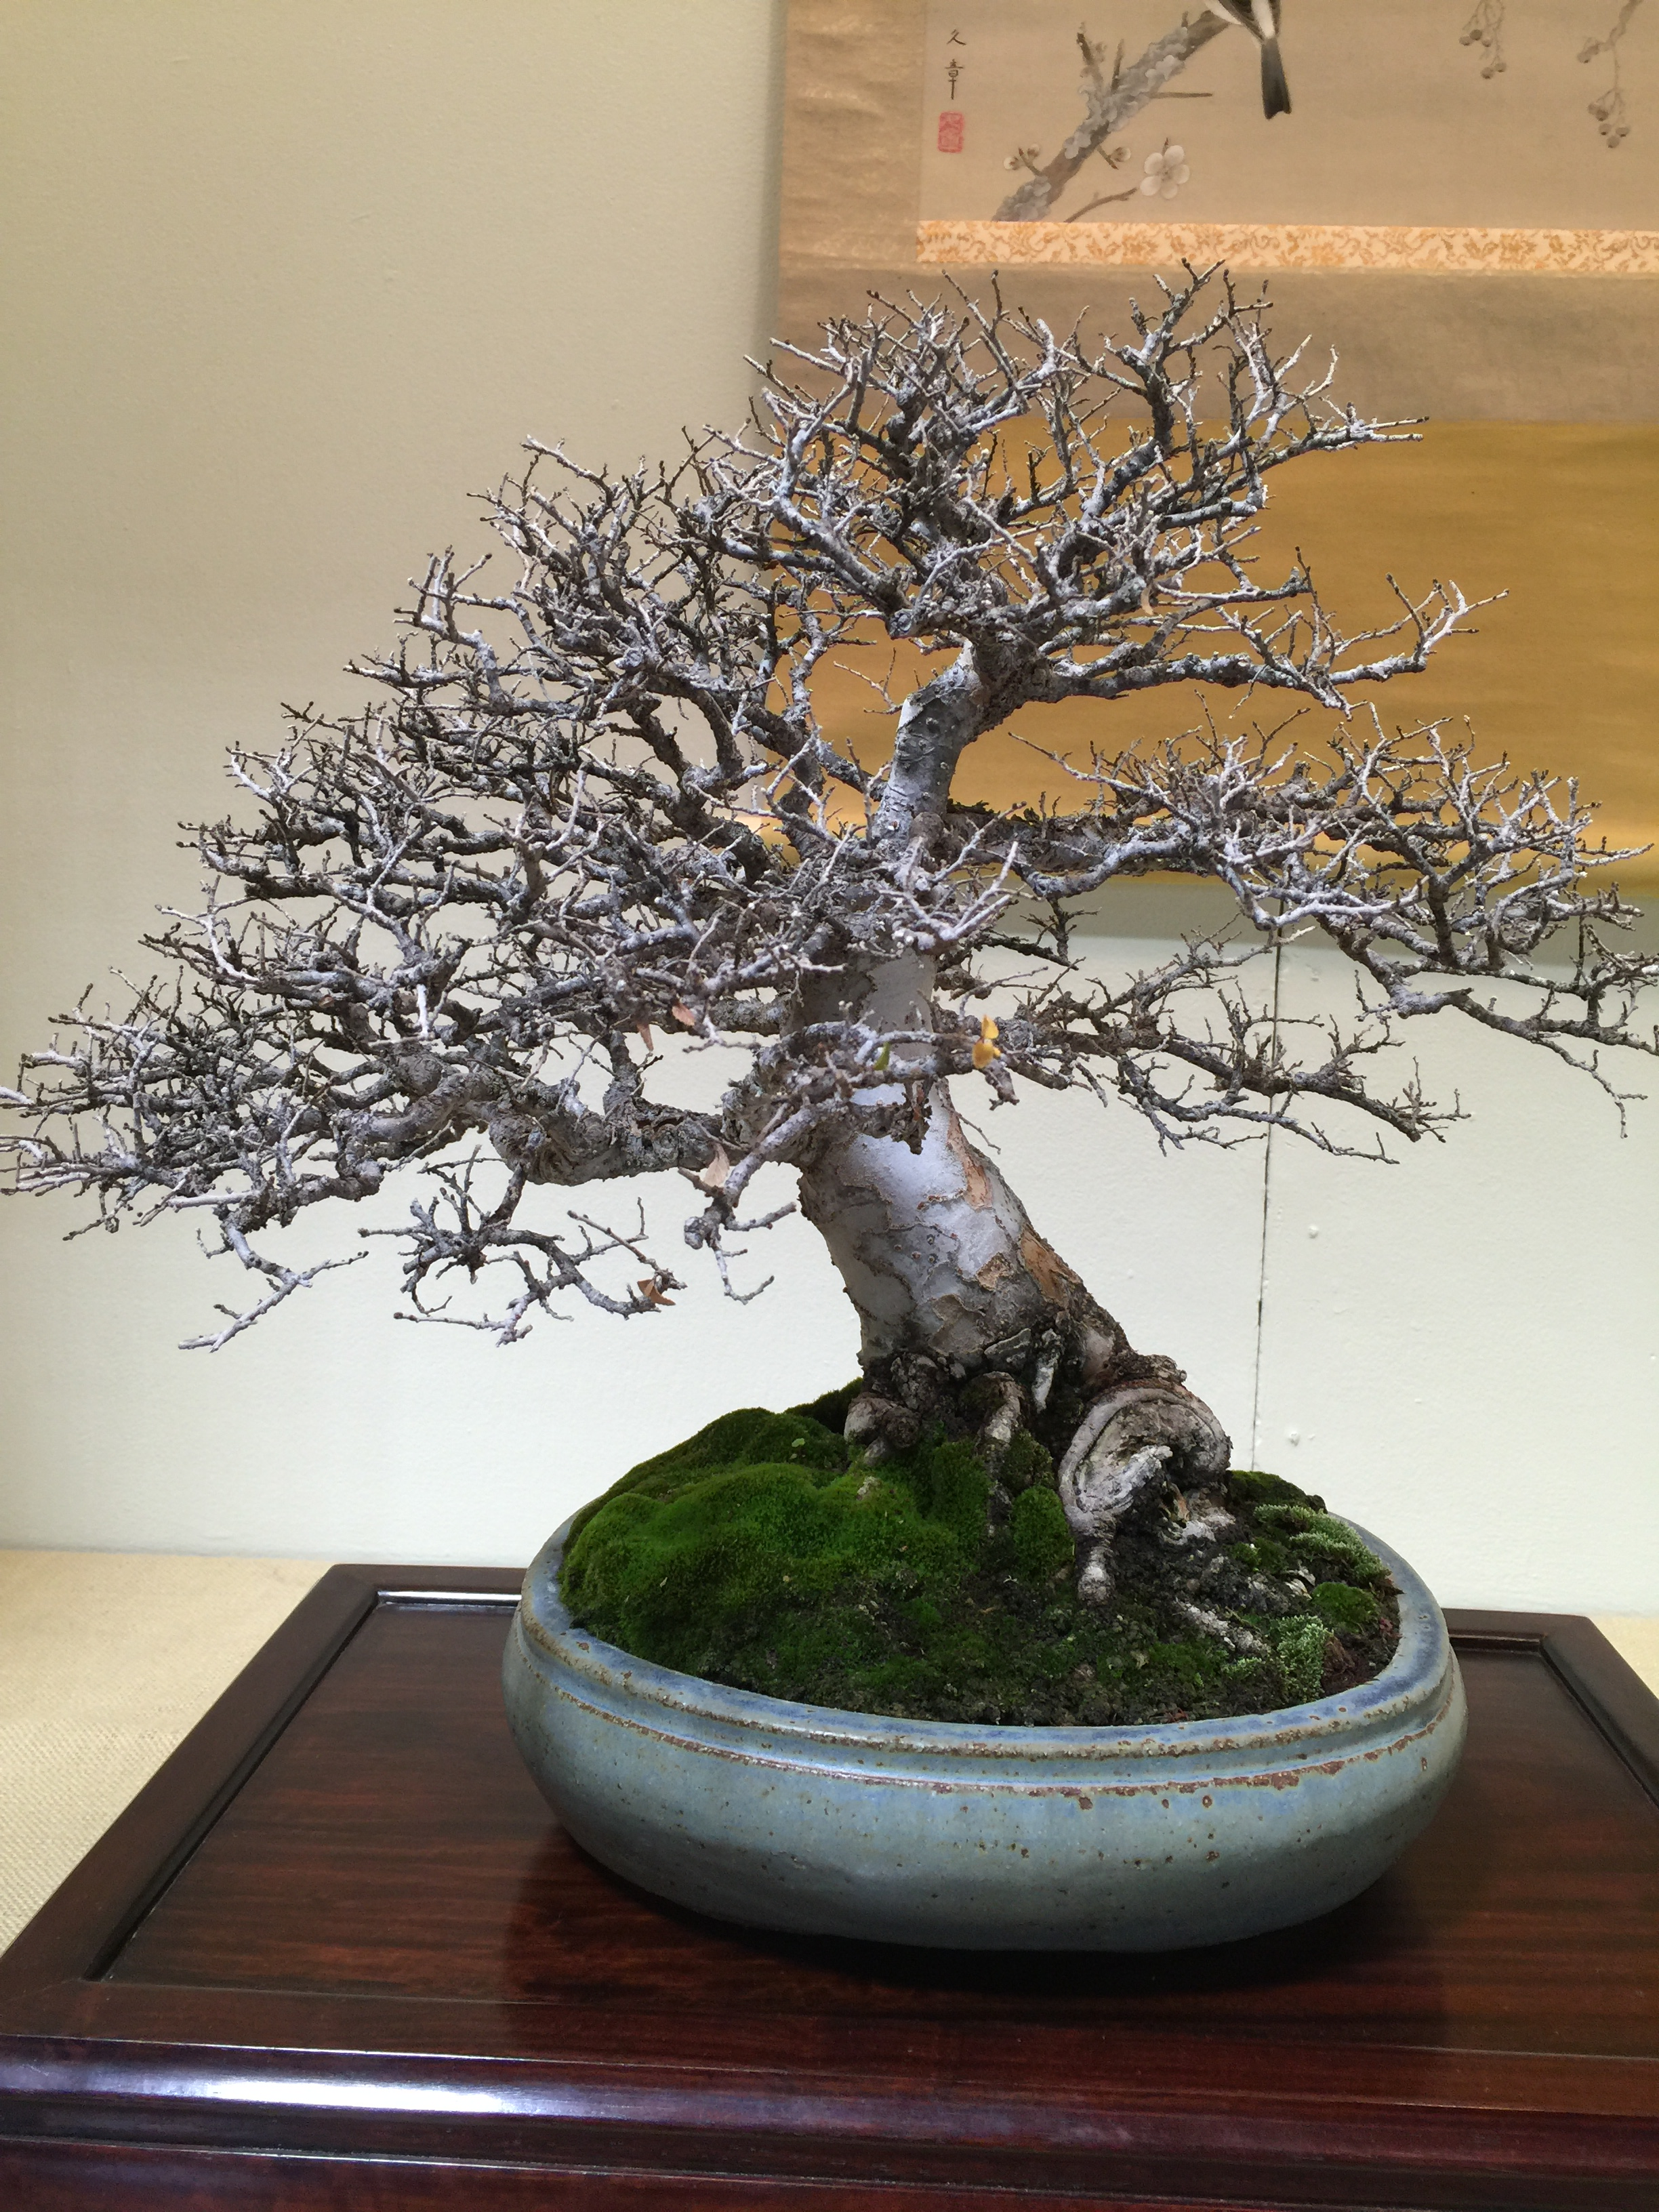 Winter silhouette show 2017 bonsai club los angeles trees los angeles baikoen bonsai for Cal expo home and garden show 2017